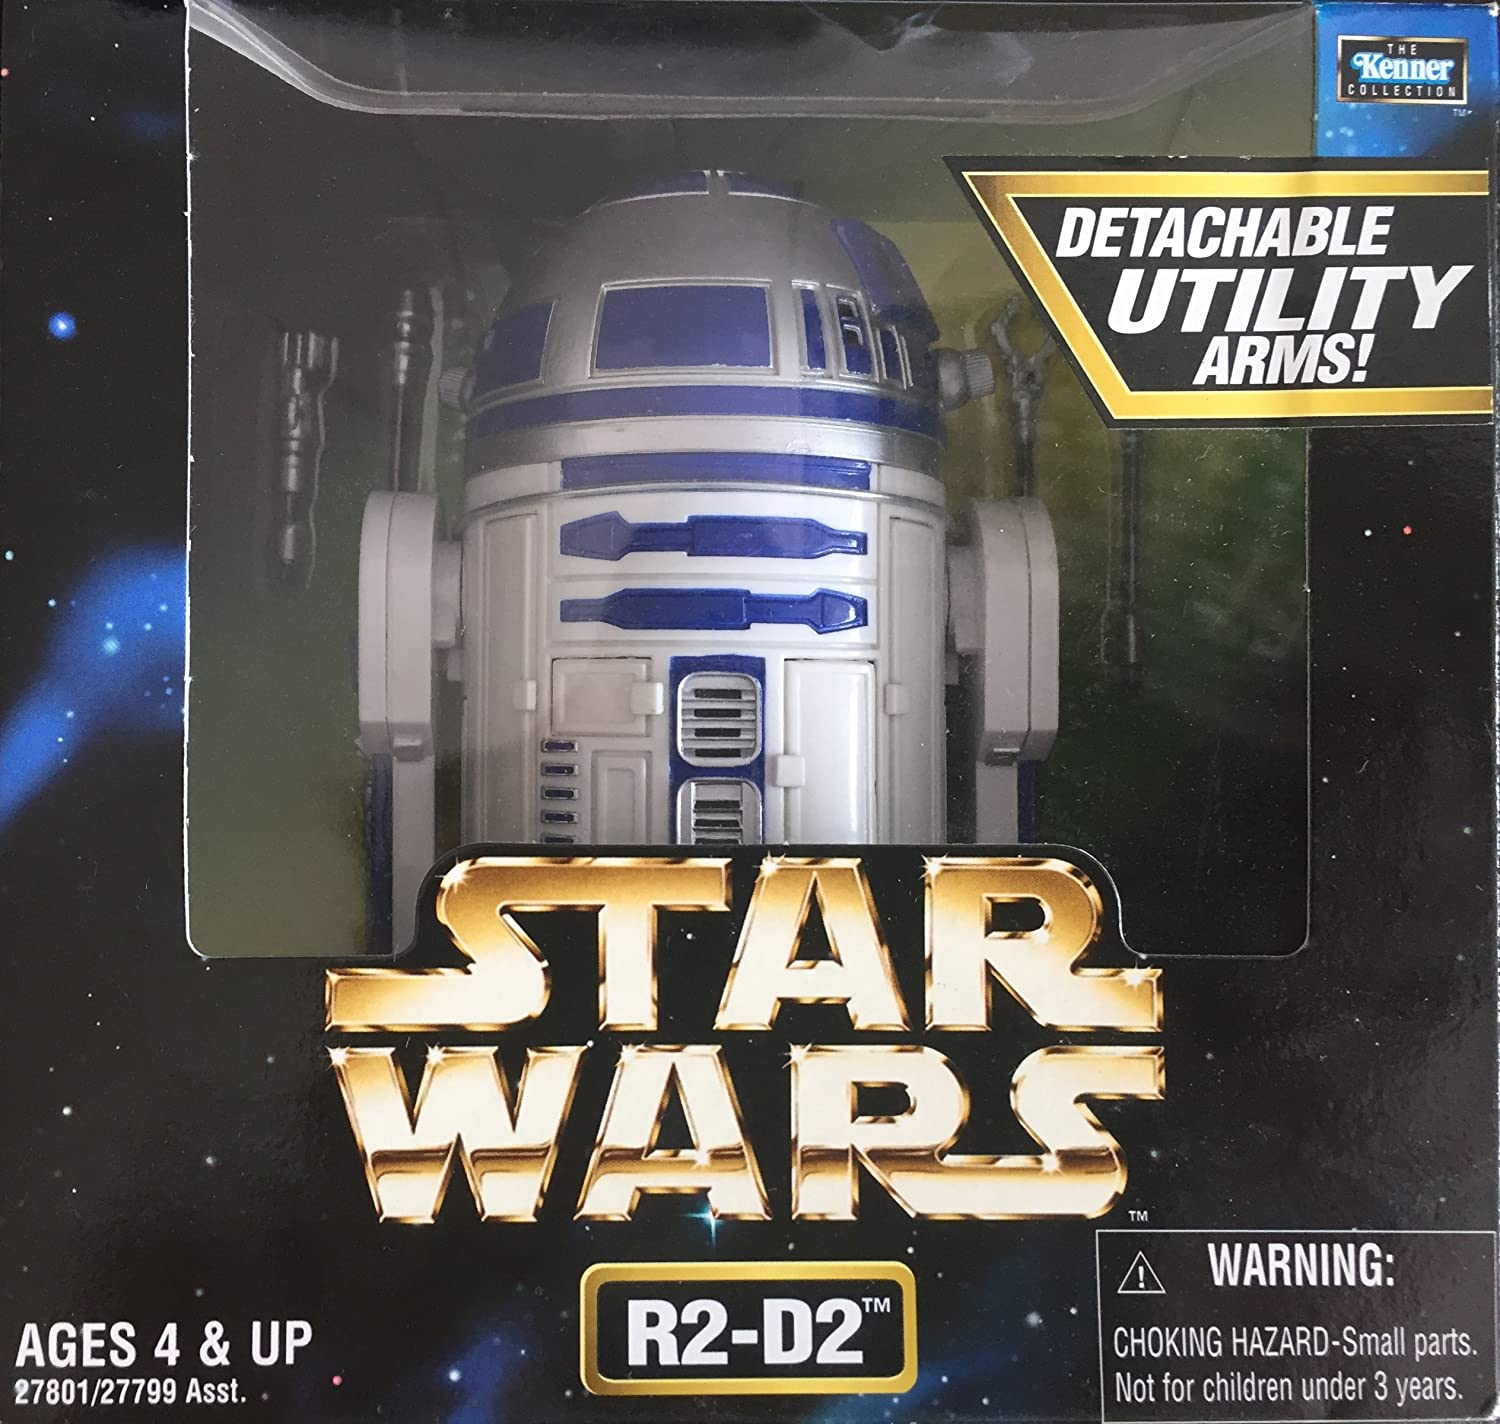 Star Wars R2-D2 with Detachable Utility Arms 6